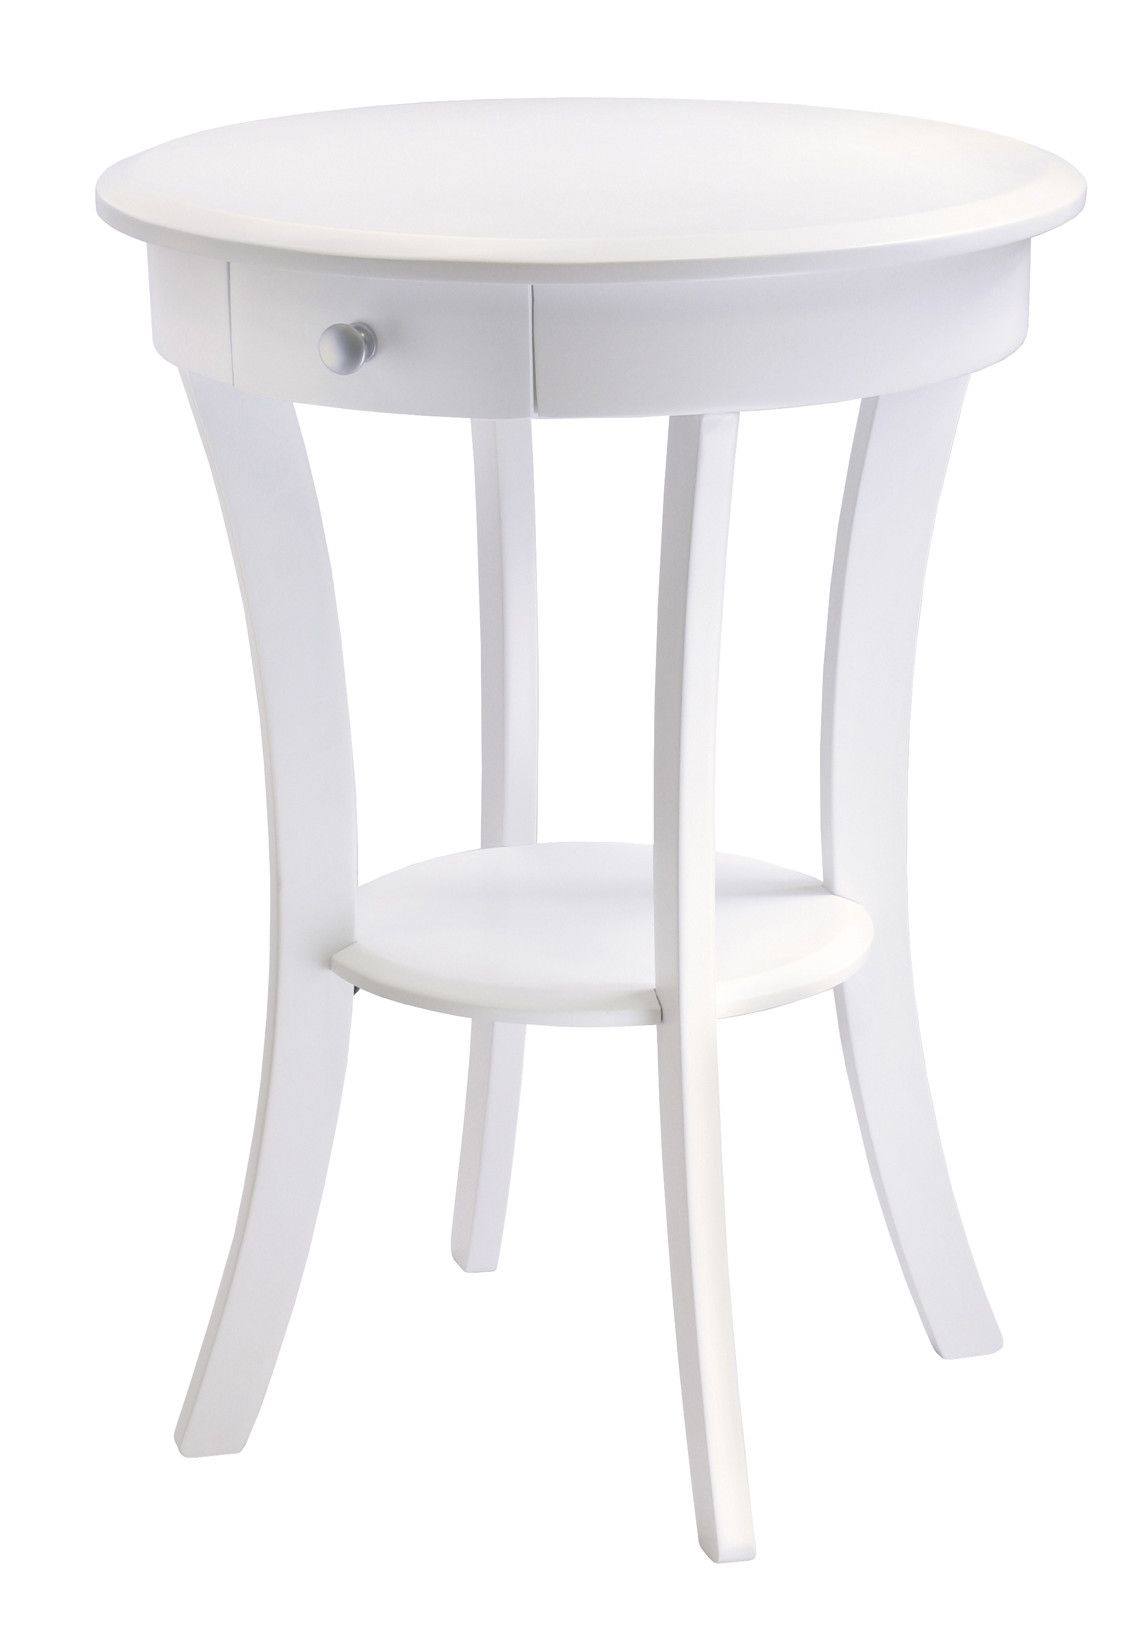 emington end table with storage and products white pedestal accent tennis paddles mosaic dining set oak drop leaf hardwood small half round console cordless lamps whole